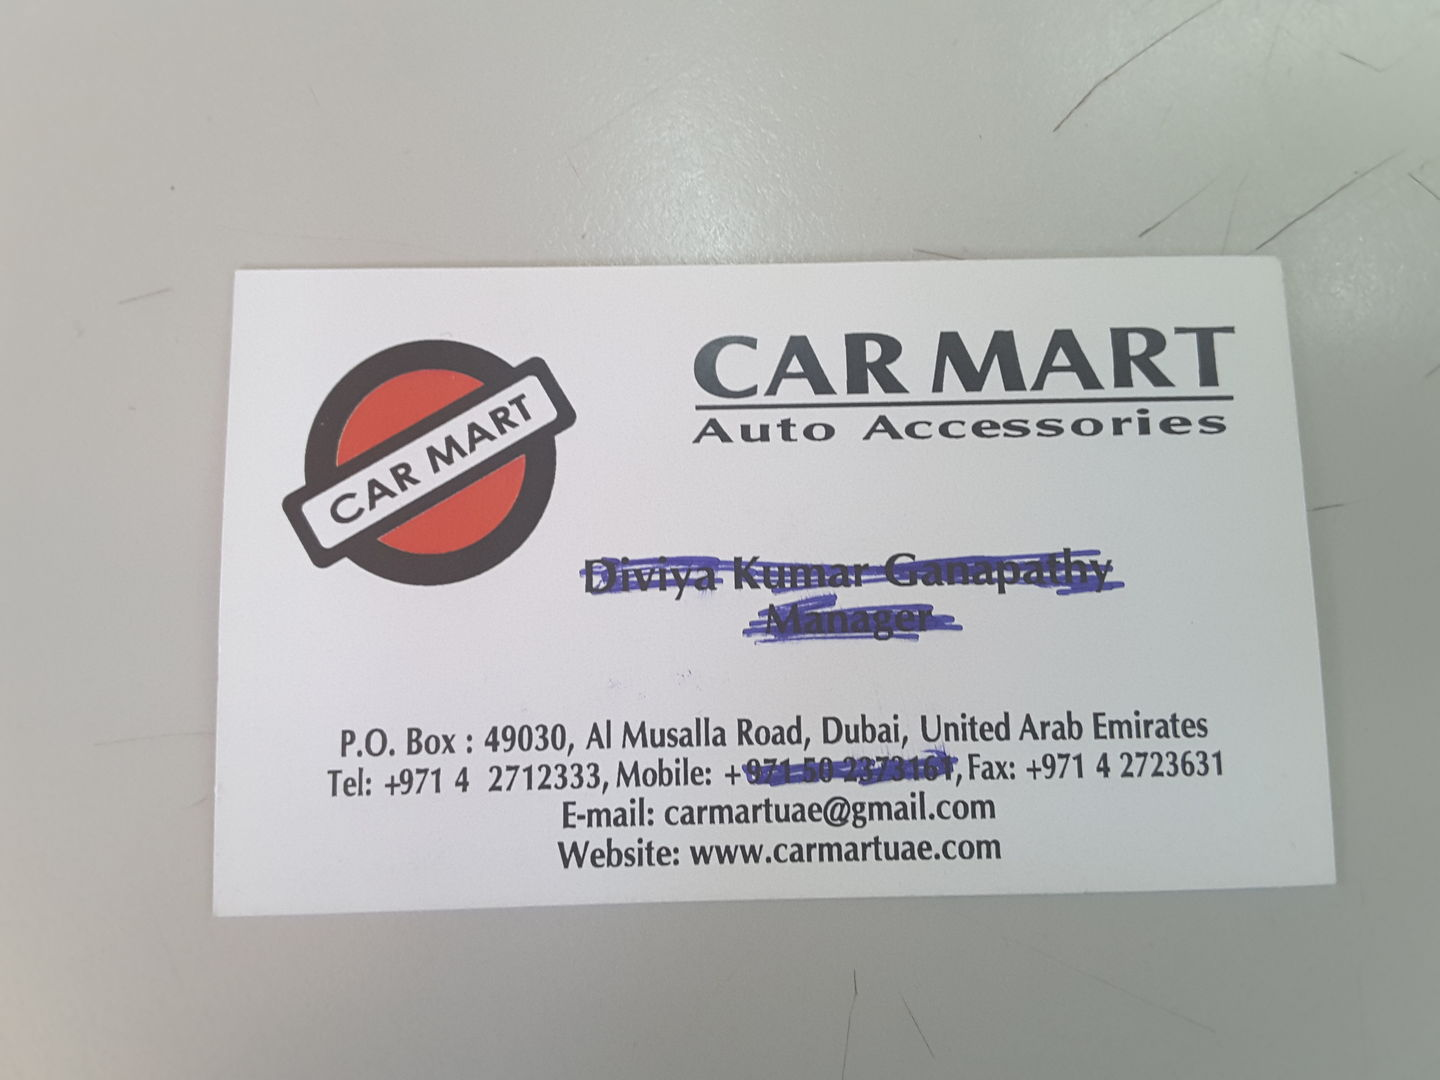 HiDubai-business-car-mart-est-b2b-services-distributors-wholesalers-al-murar-dubai-2